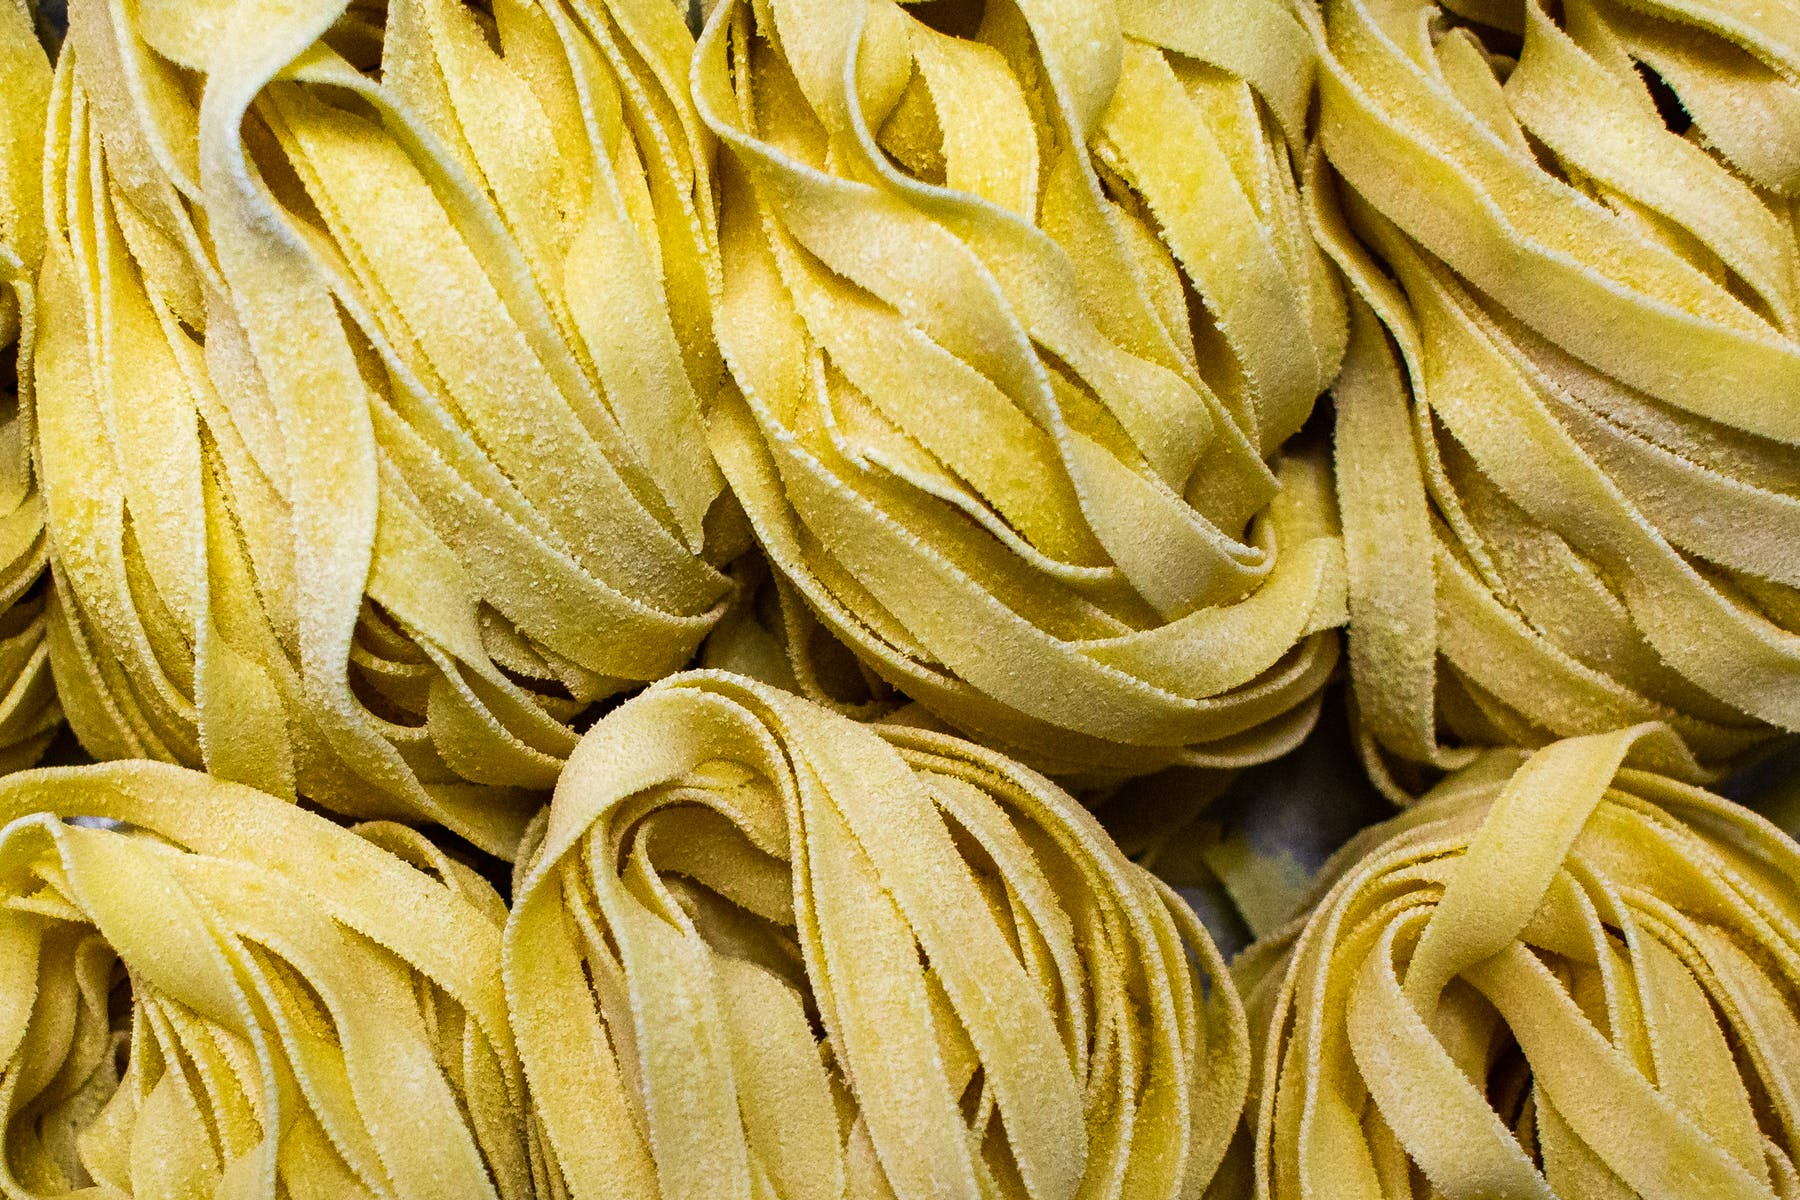 a pile of fresh pasta